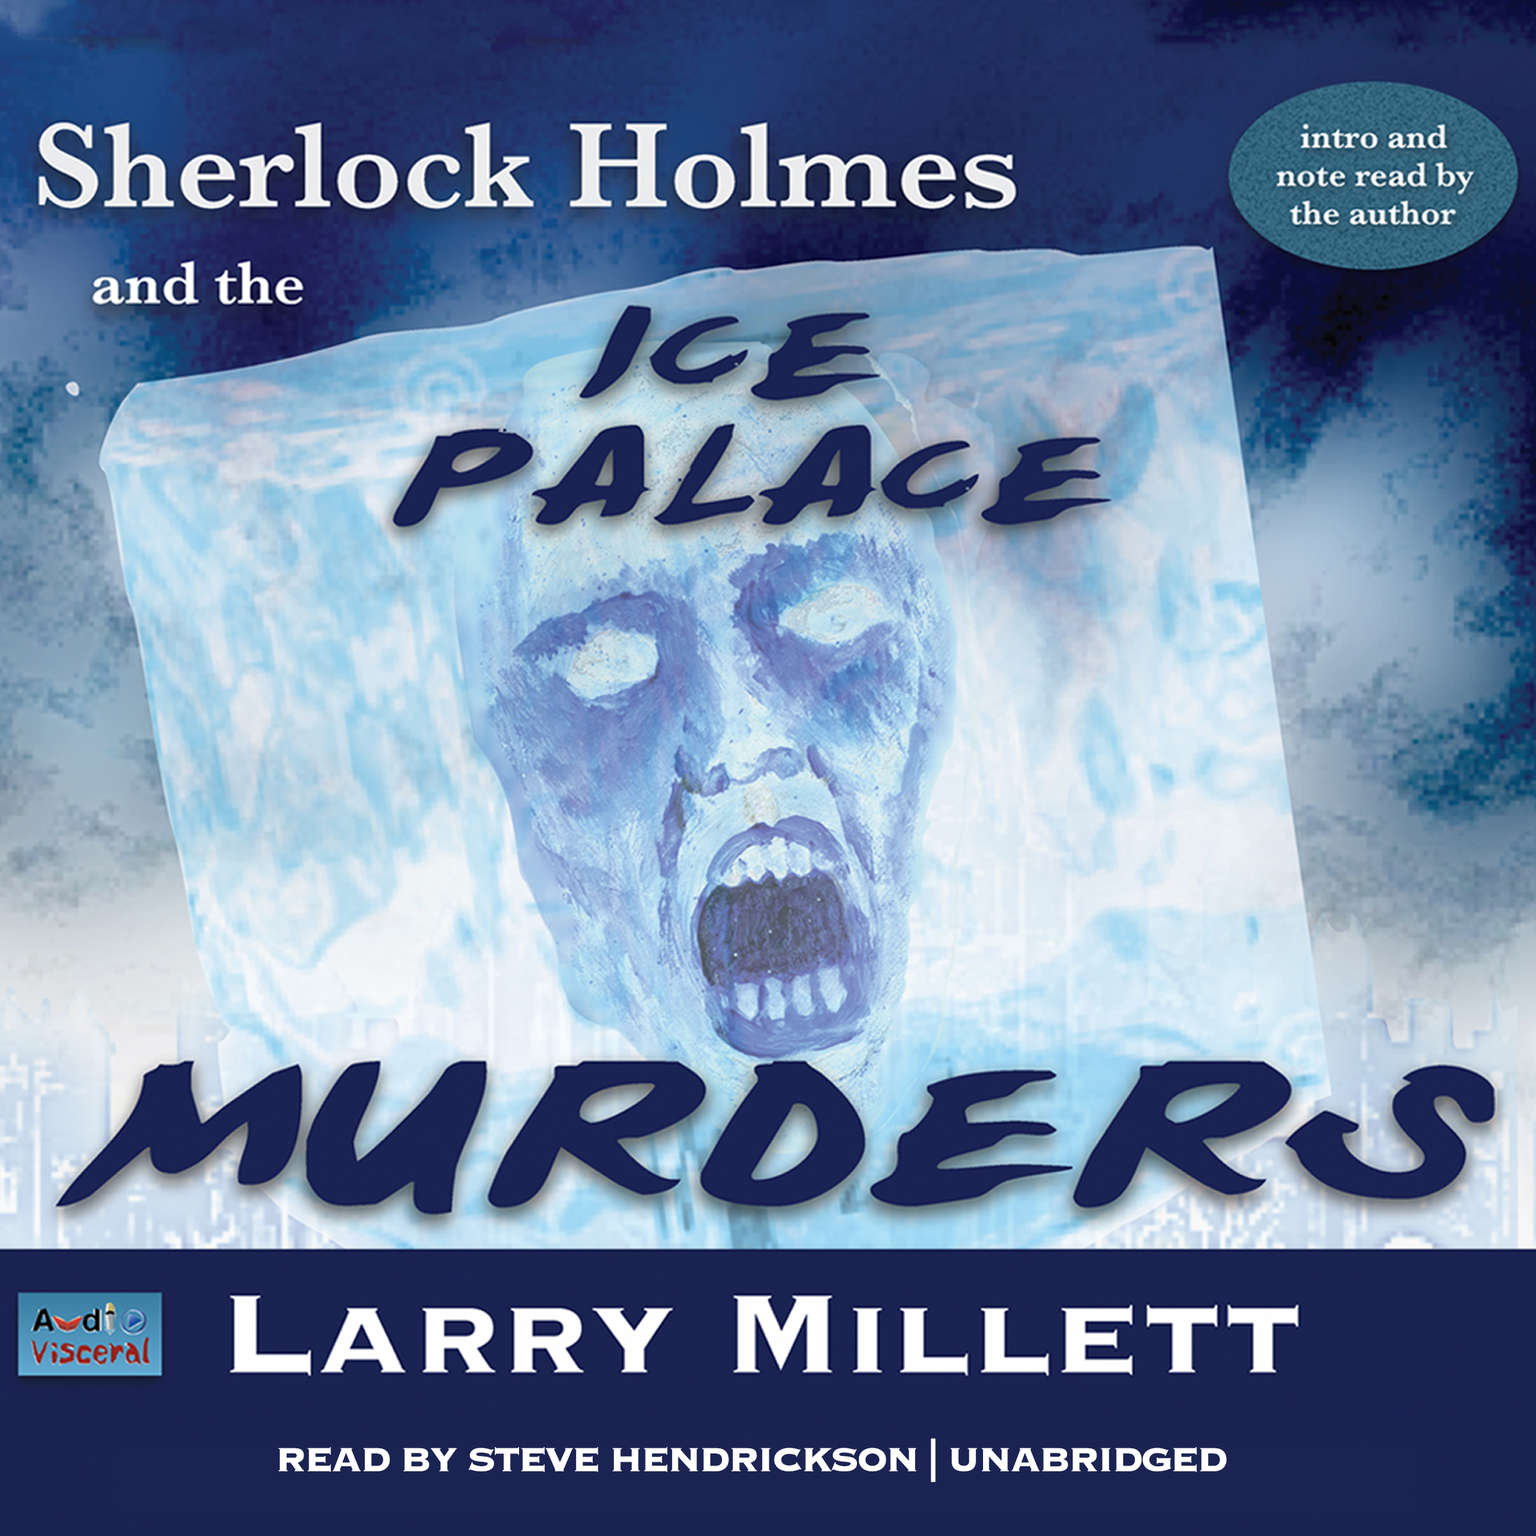 Printable Sherlock Holmes and the Ice Palace Murders: A Minnesota Mystery Featuring Shadwell Rafferty Audiobook Cover Art